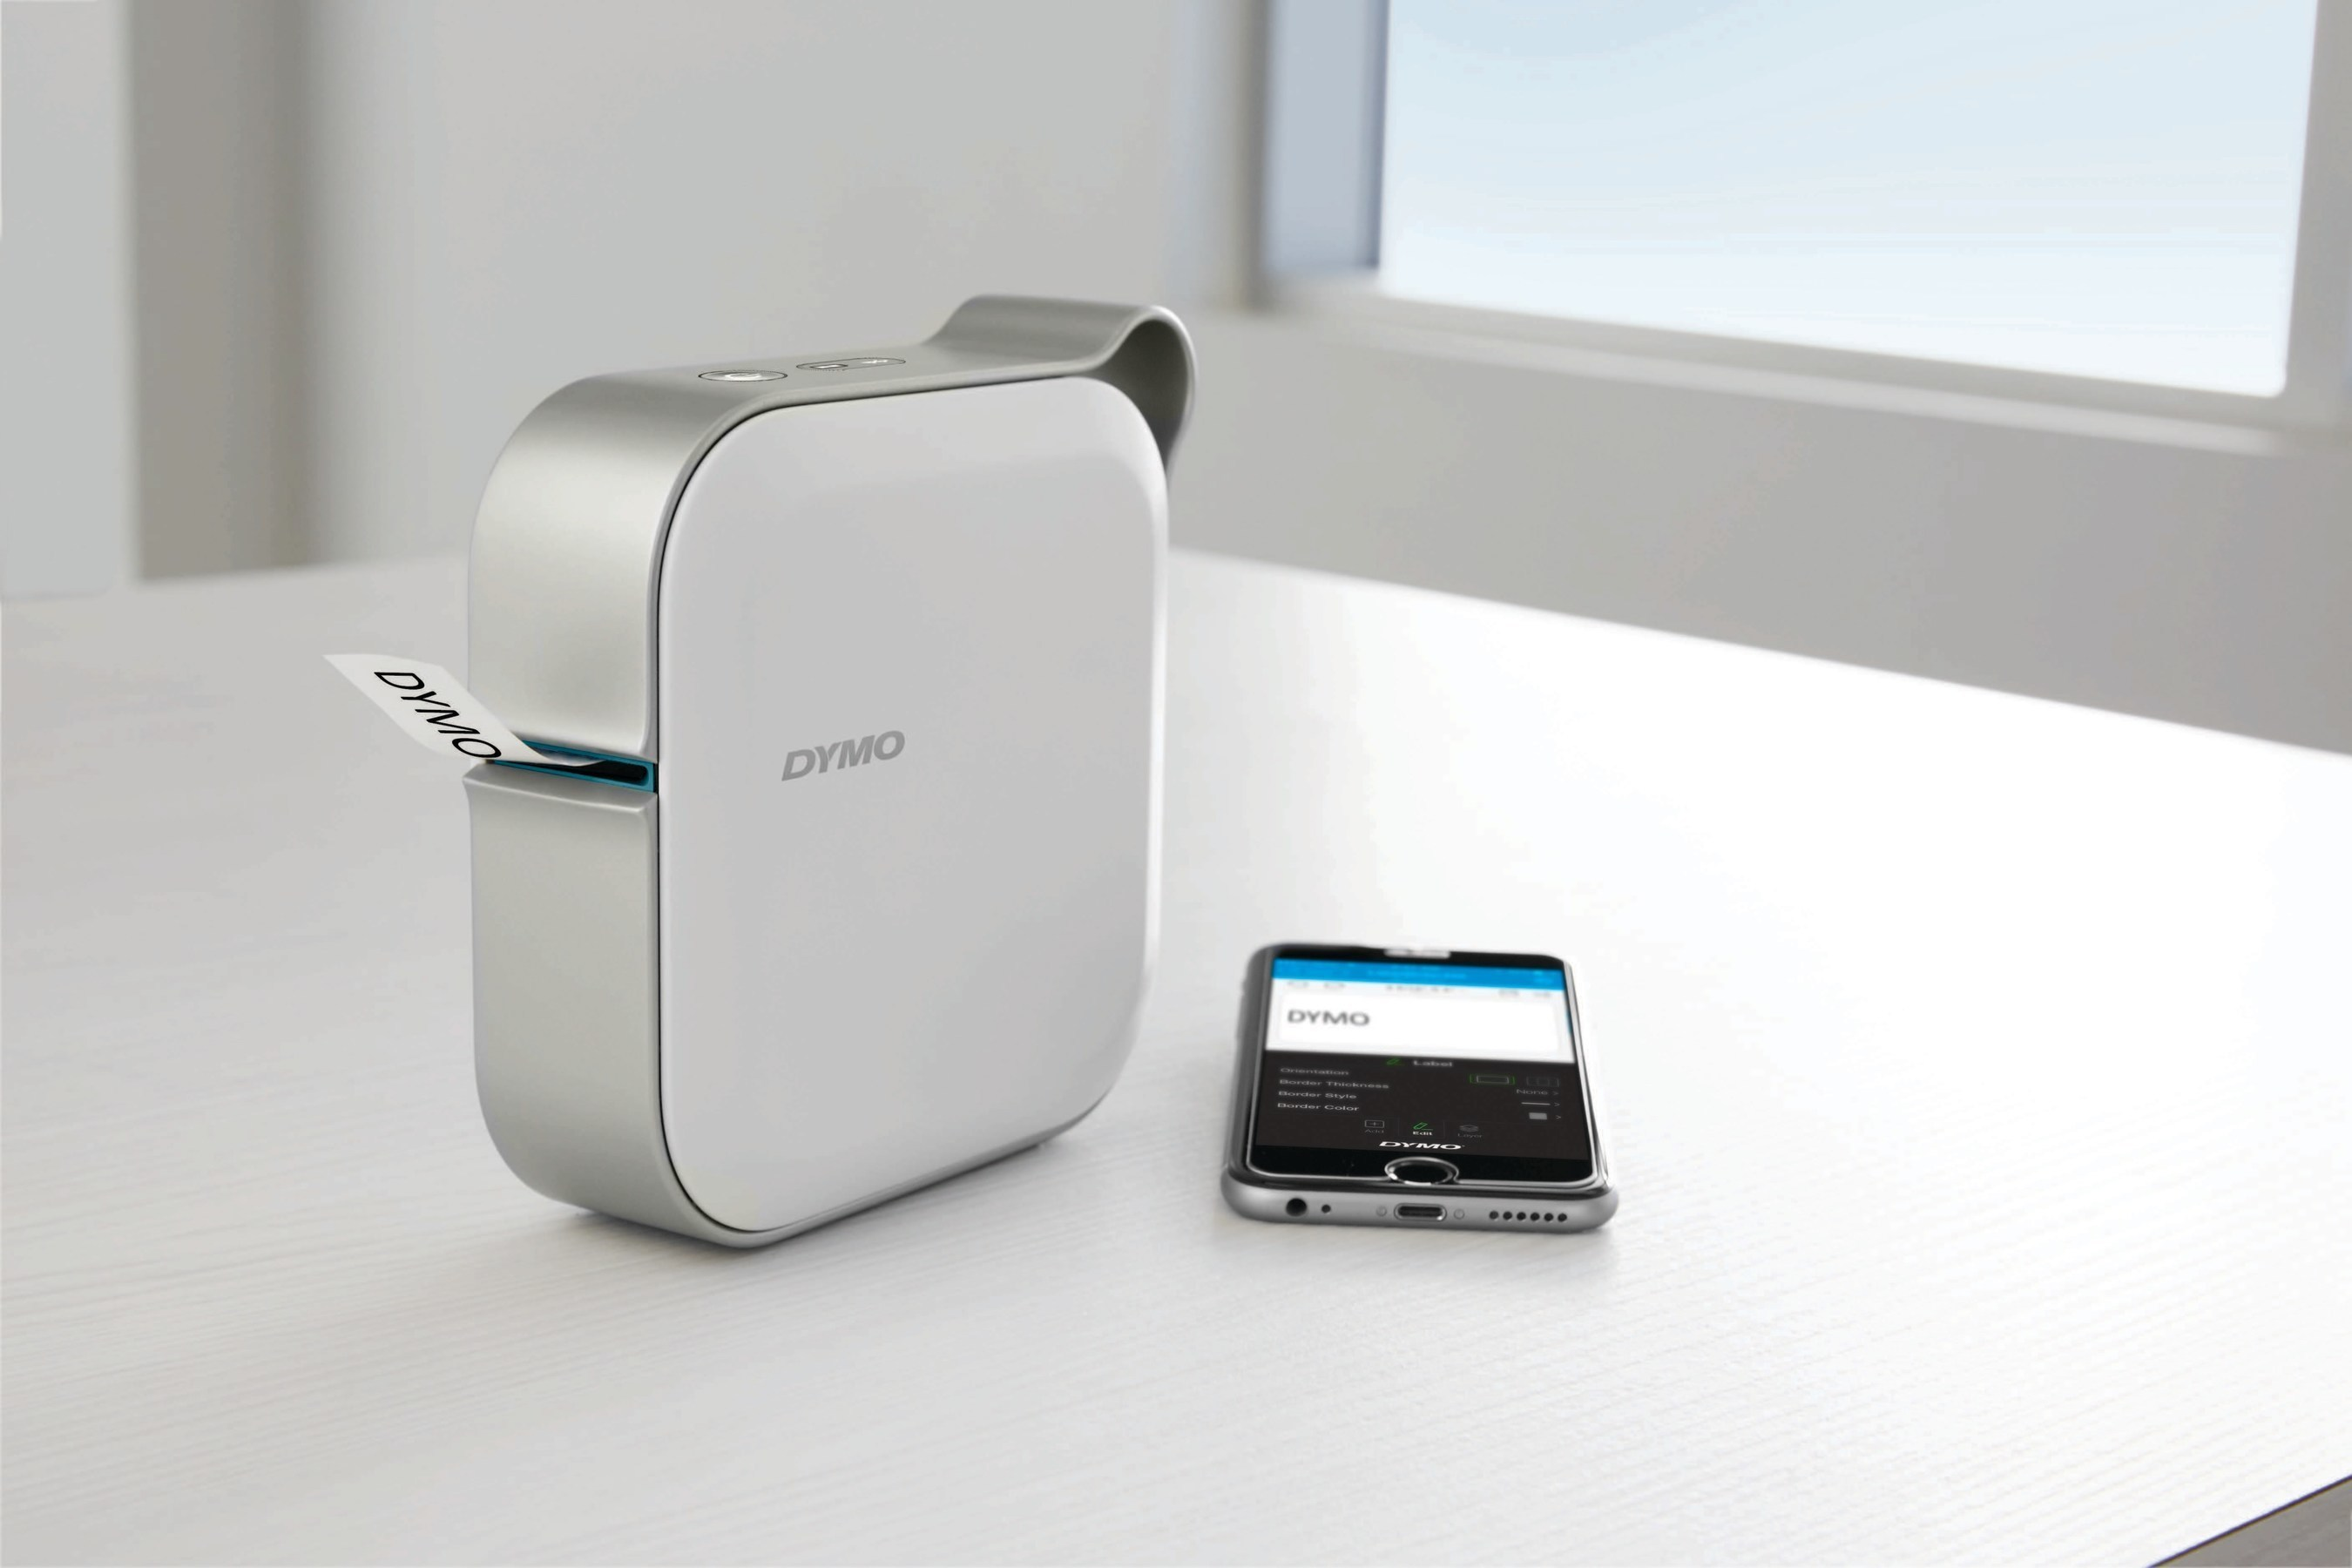 The DYMO MobileLabeler(TM) is a wireless, Bluetooth(R) compatible, personal label maker that allows users to quickly and seamlessly create professional looking labels from anywhere with a tap of their smartphone.